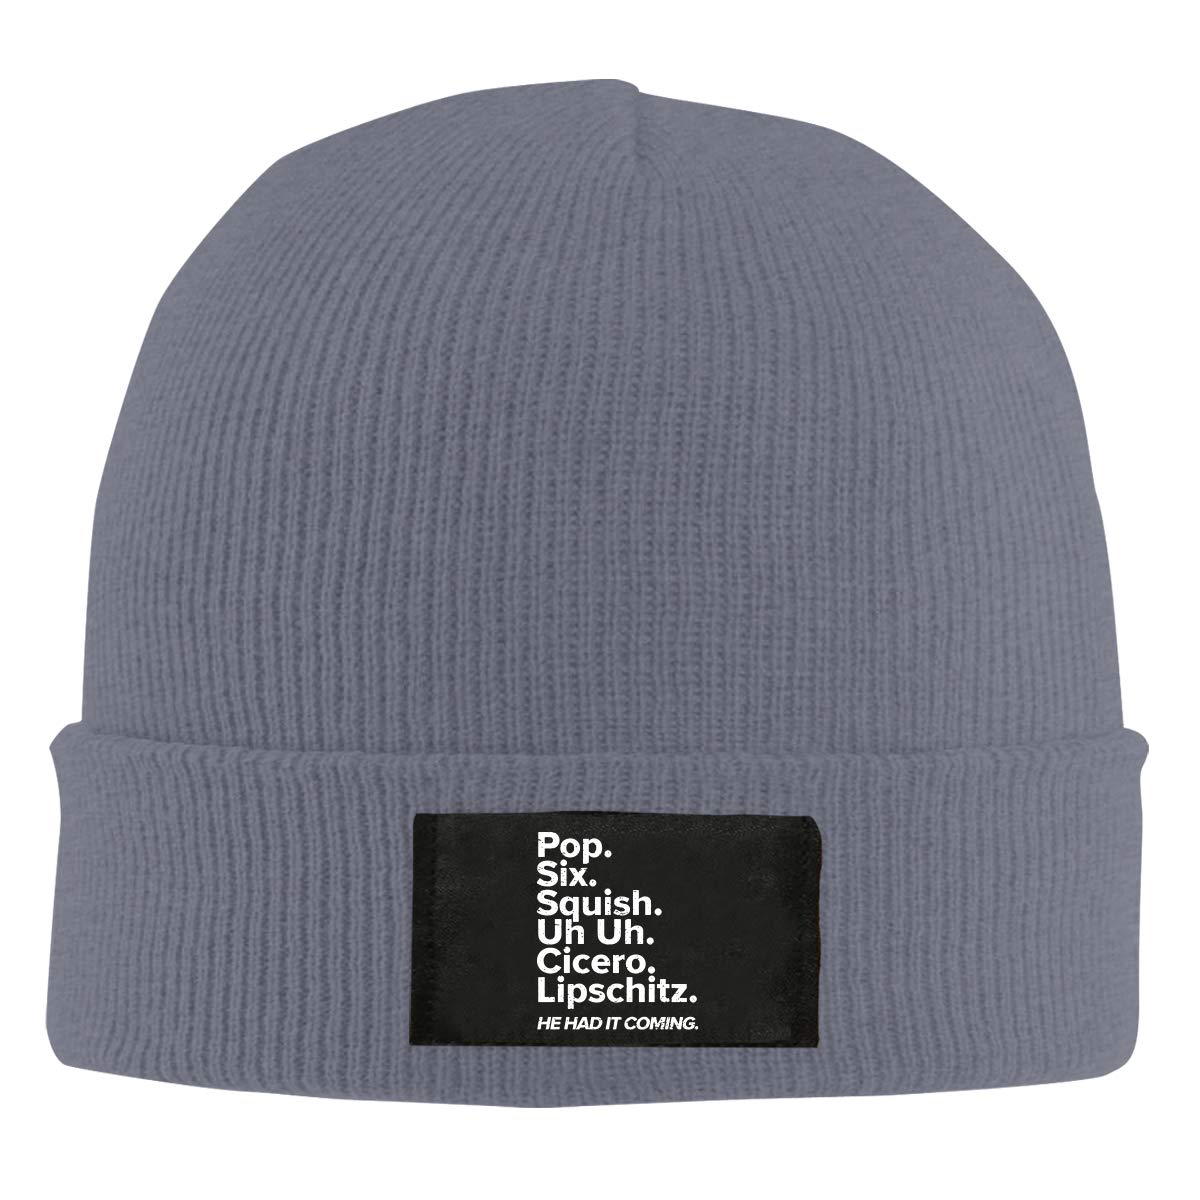 Cell Block Musical Theatre Rehearsal Men Women Knitted Hat Soft Pure Color Hat